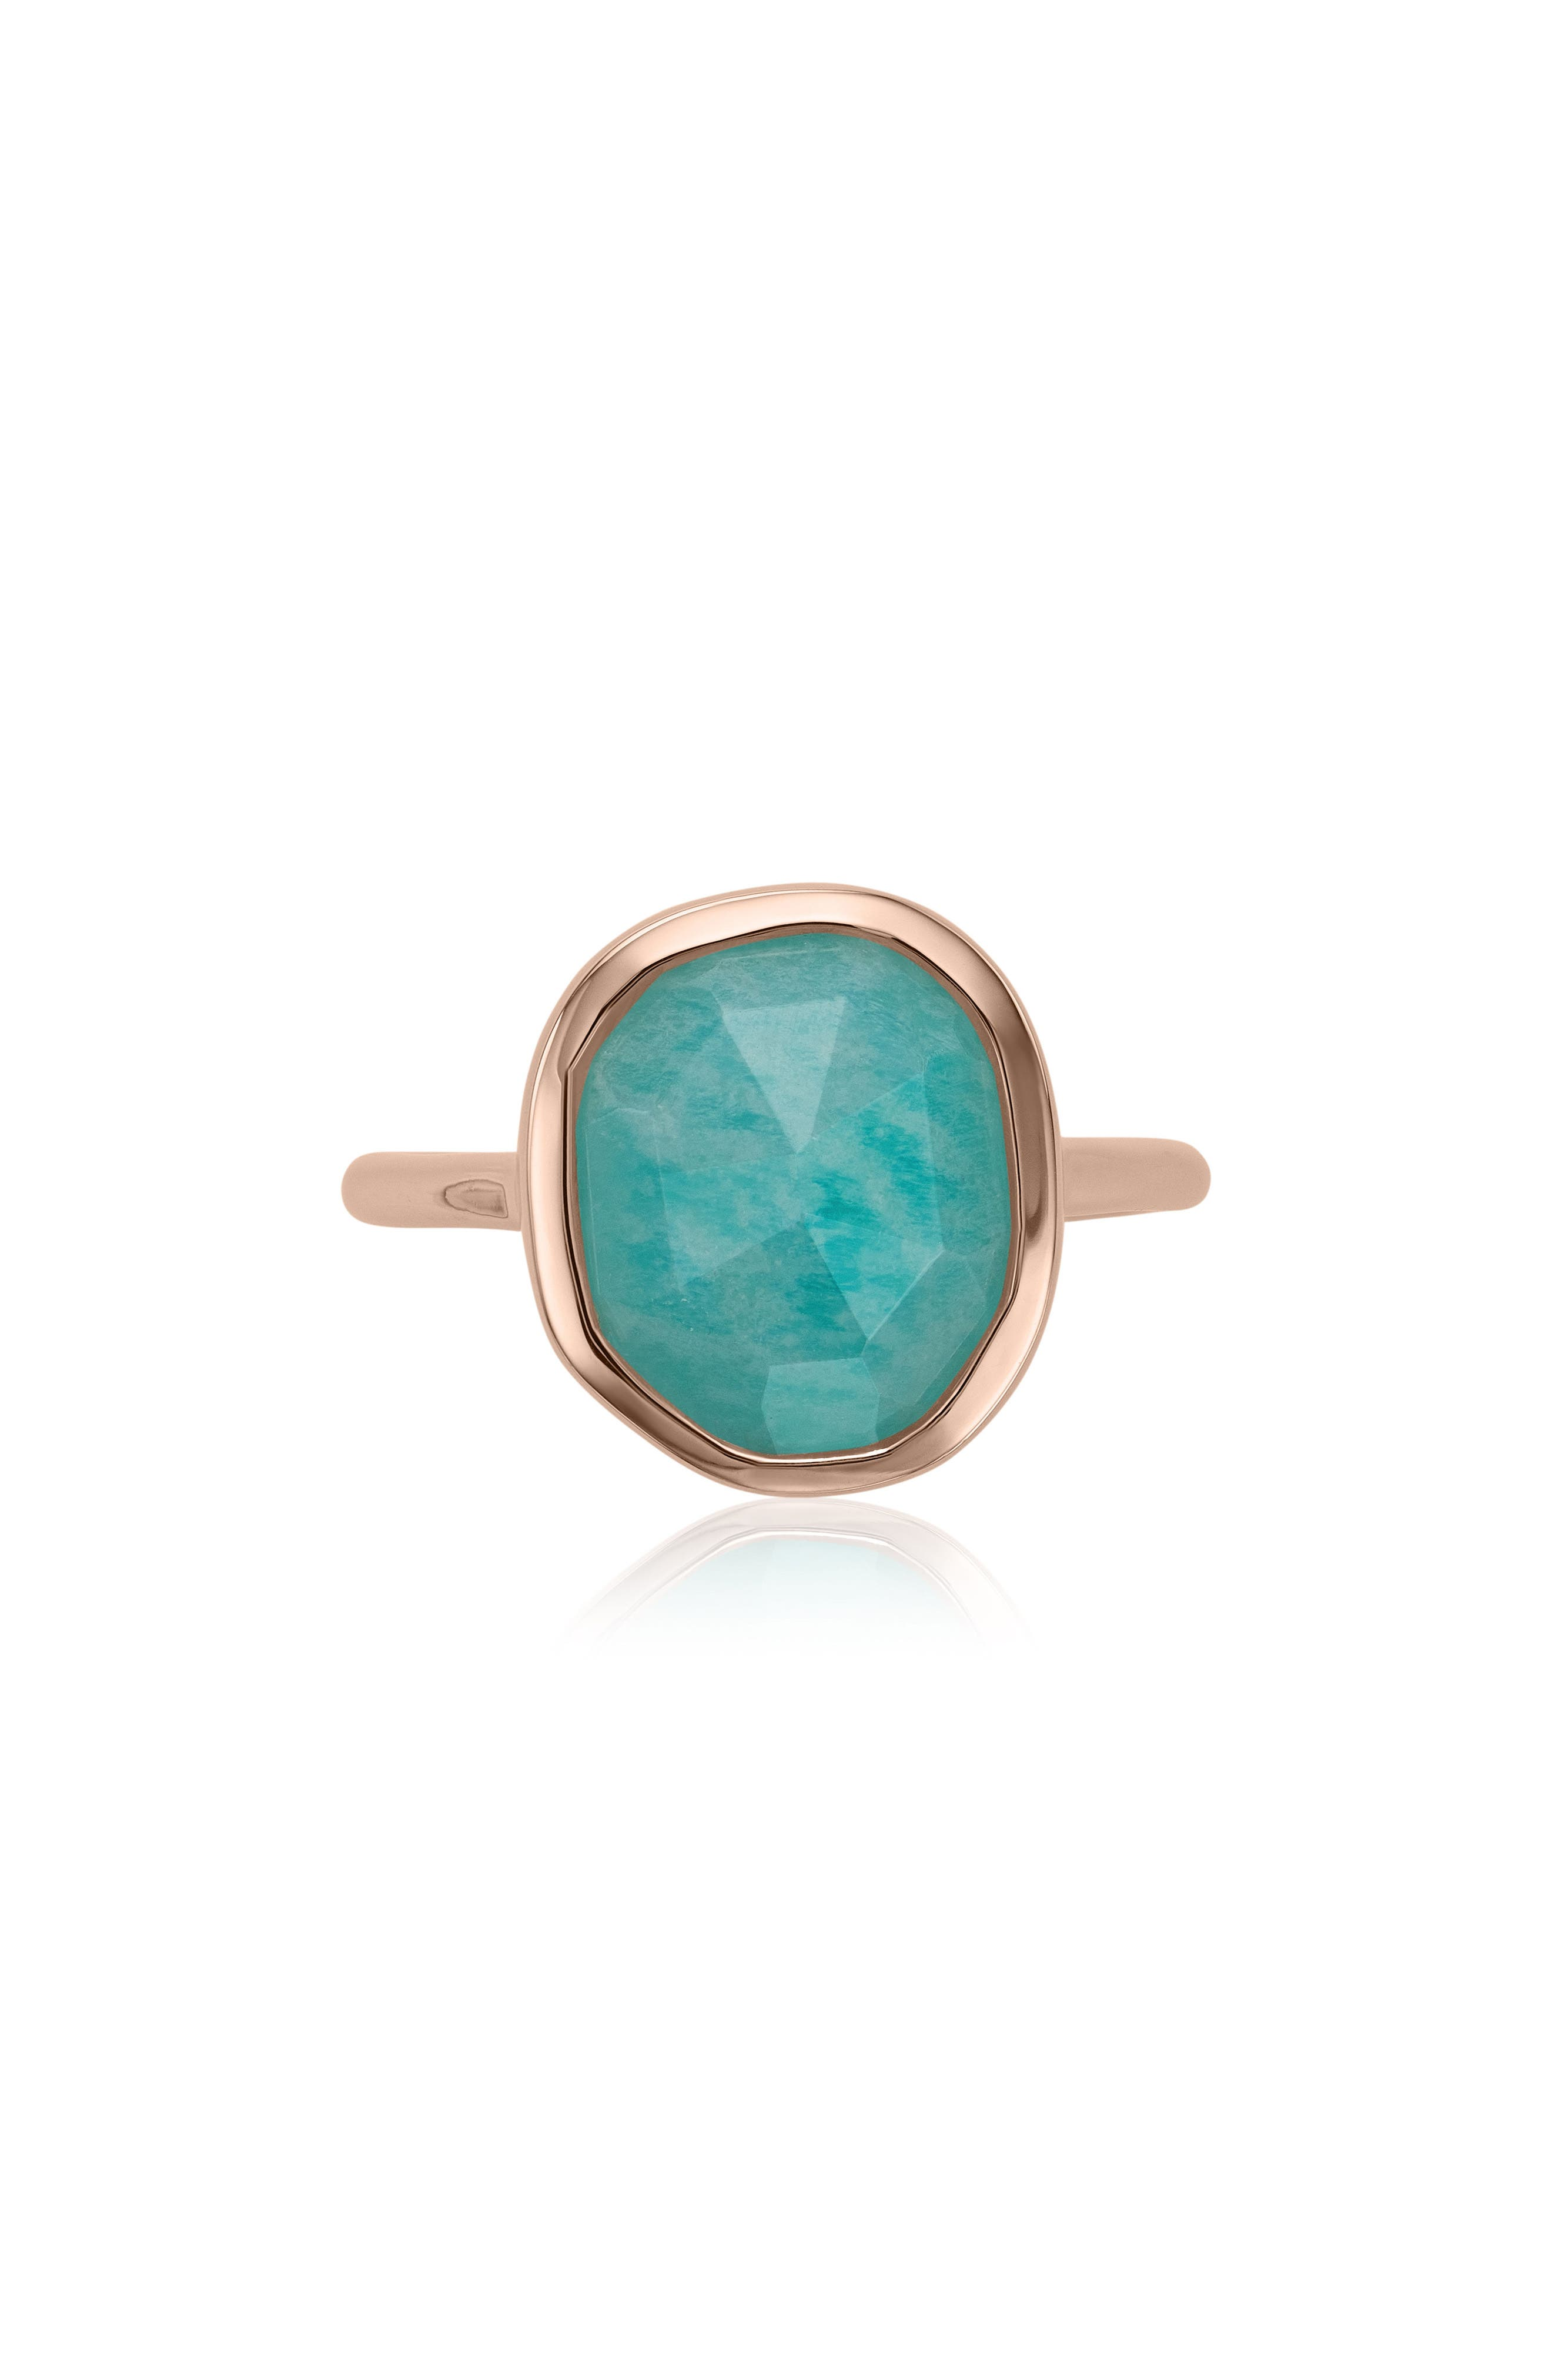 'SIREN' MEDIUM SEMIPRECIOUS STONE STACKING RING